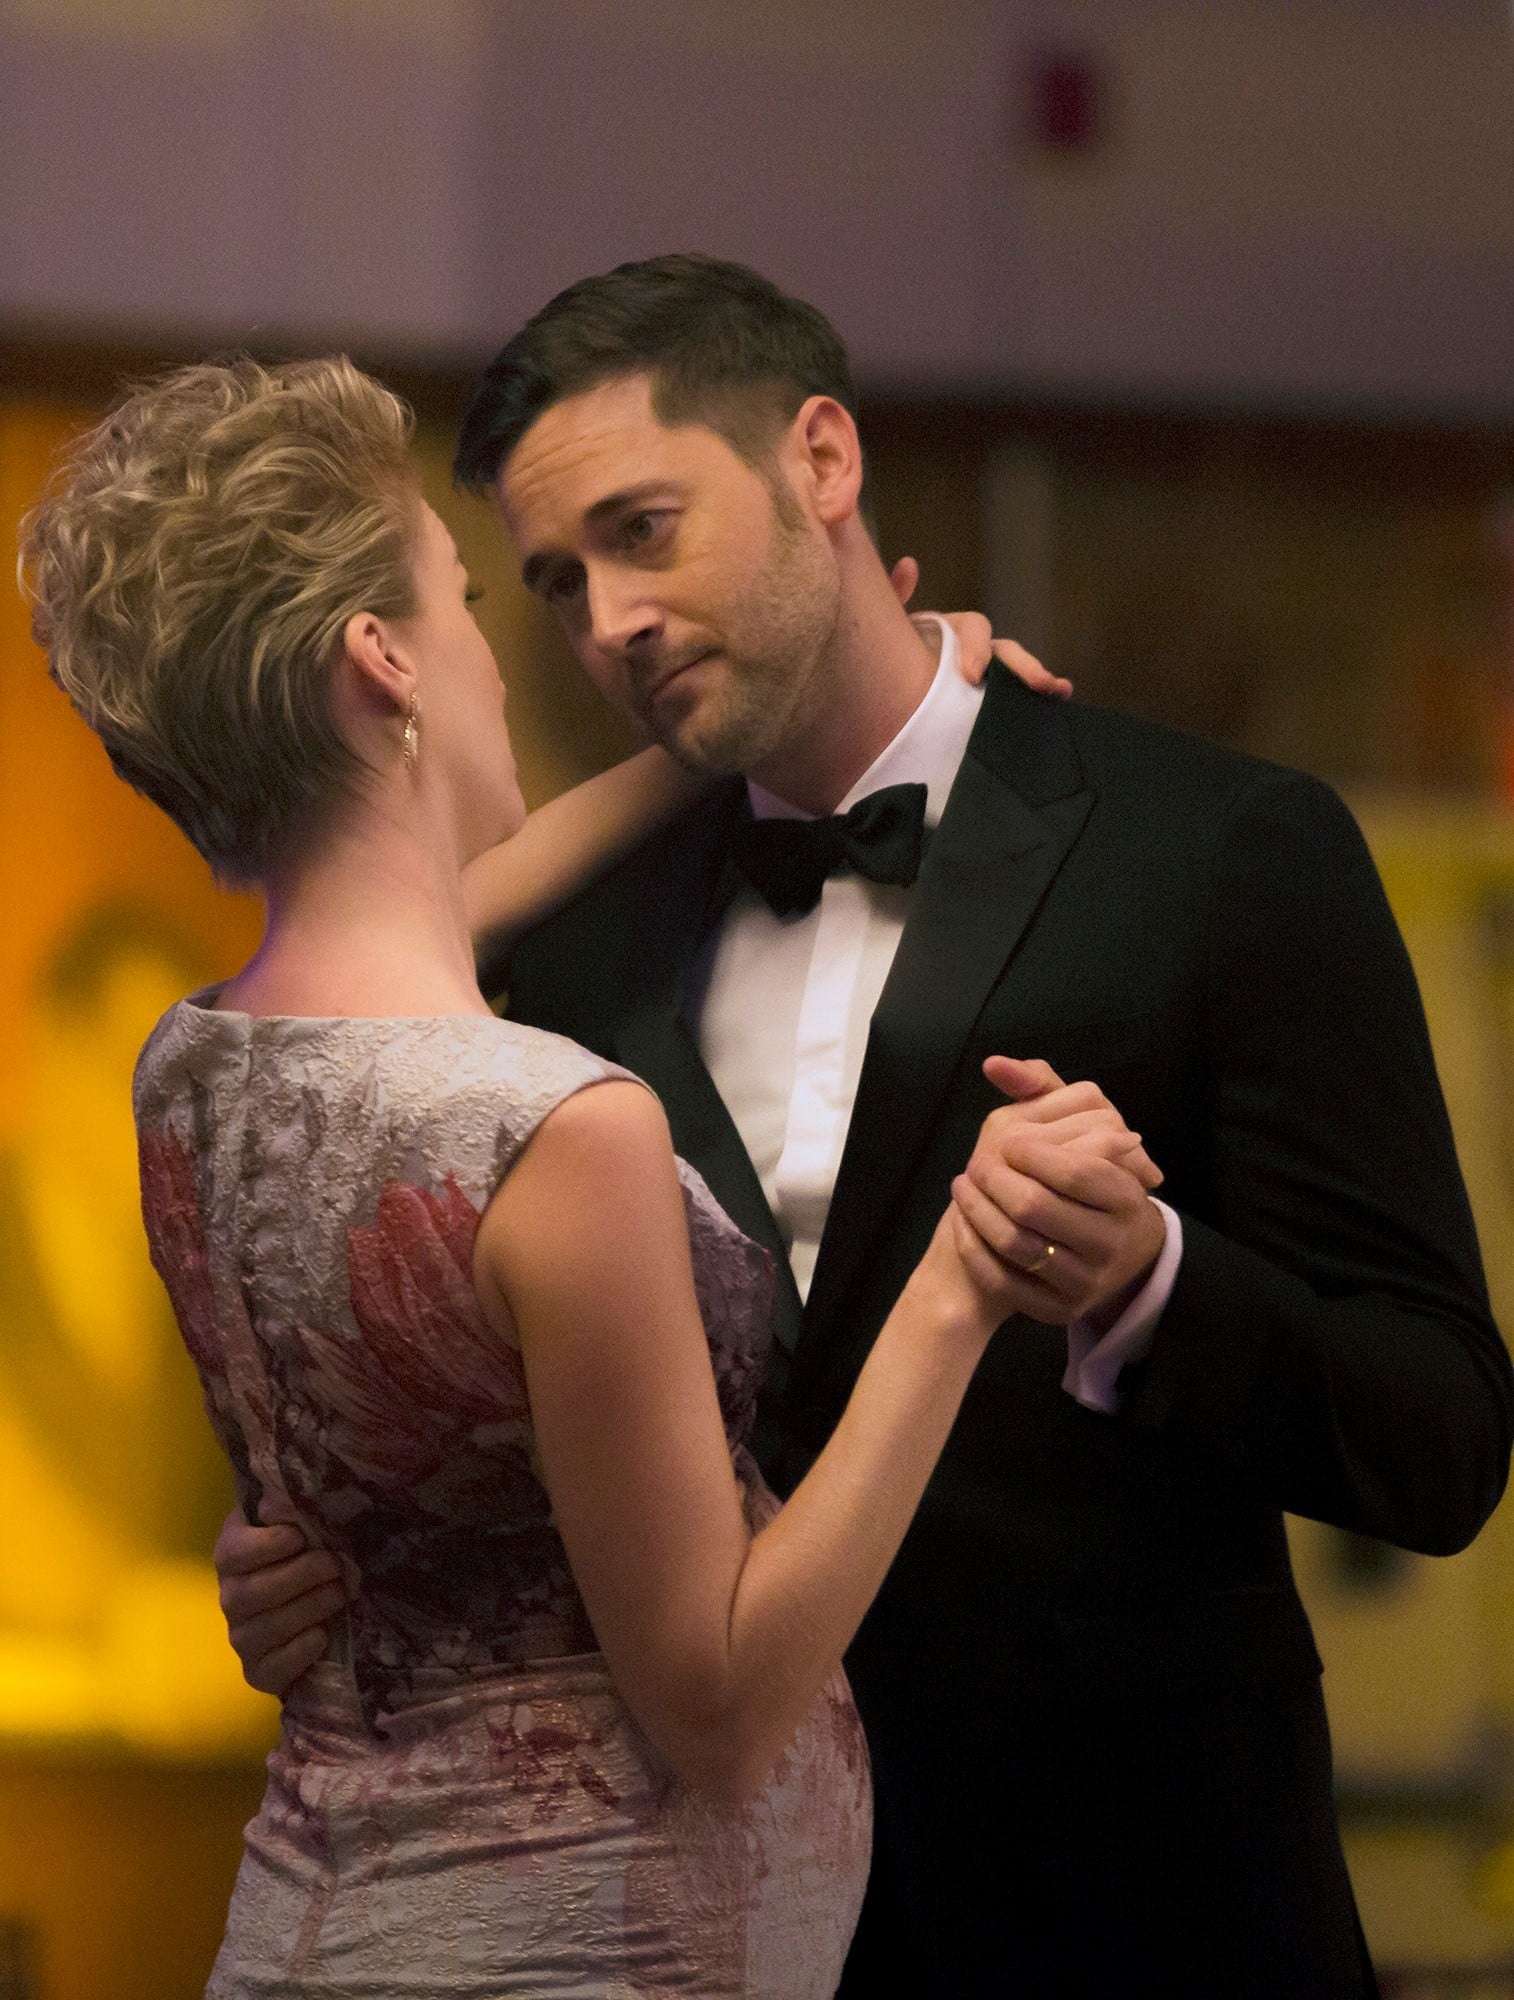 Lovely Couple Tall New Amsterdam Season 1 Episode 6 Tv Fanatic